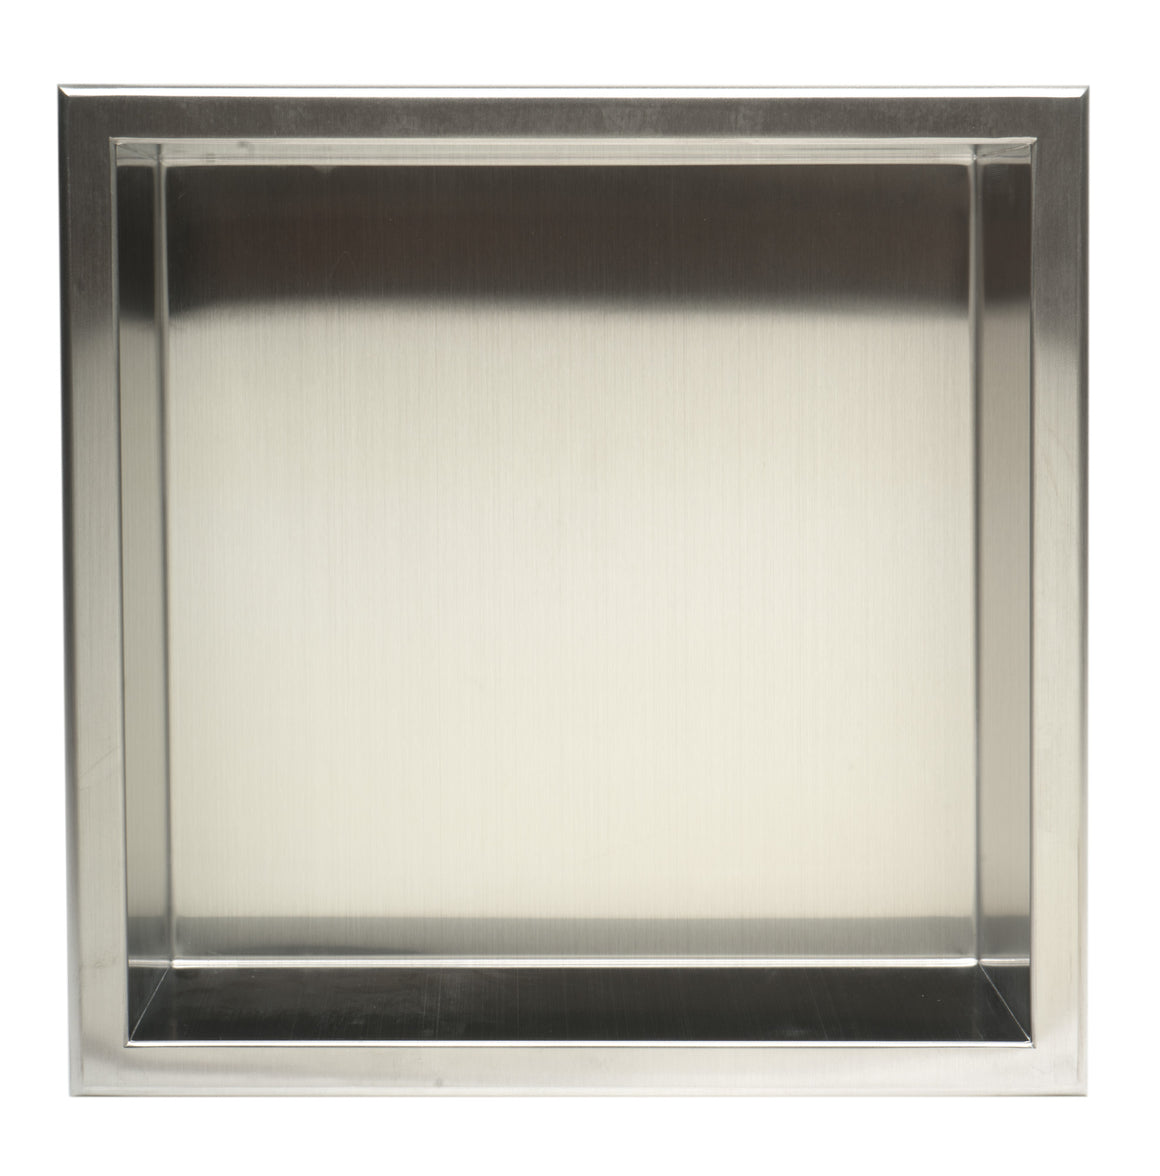 ALFI brand 12 x 12 Brushed Stainless Steel Square Single Shelf Bath Shower Niche